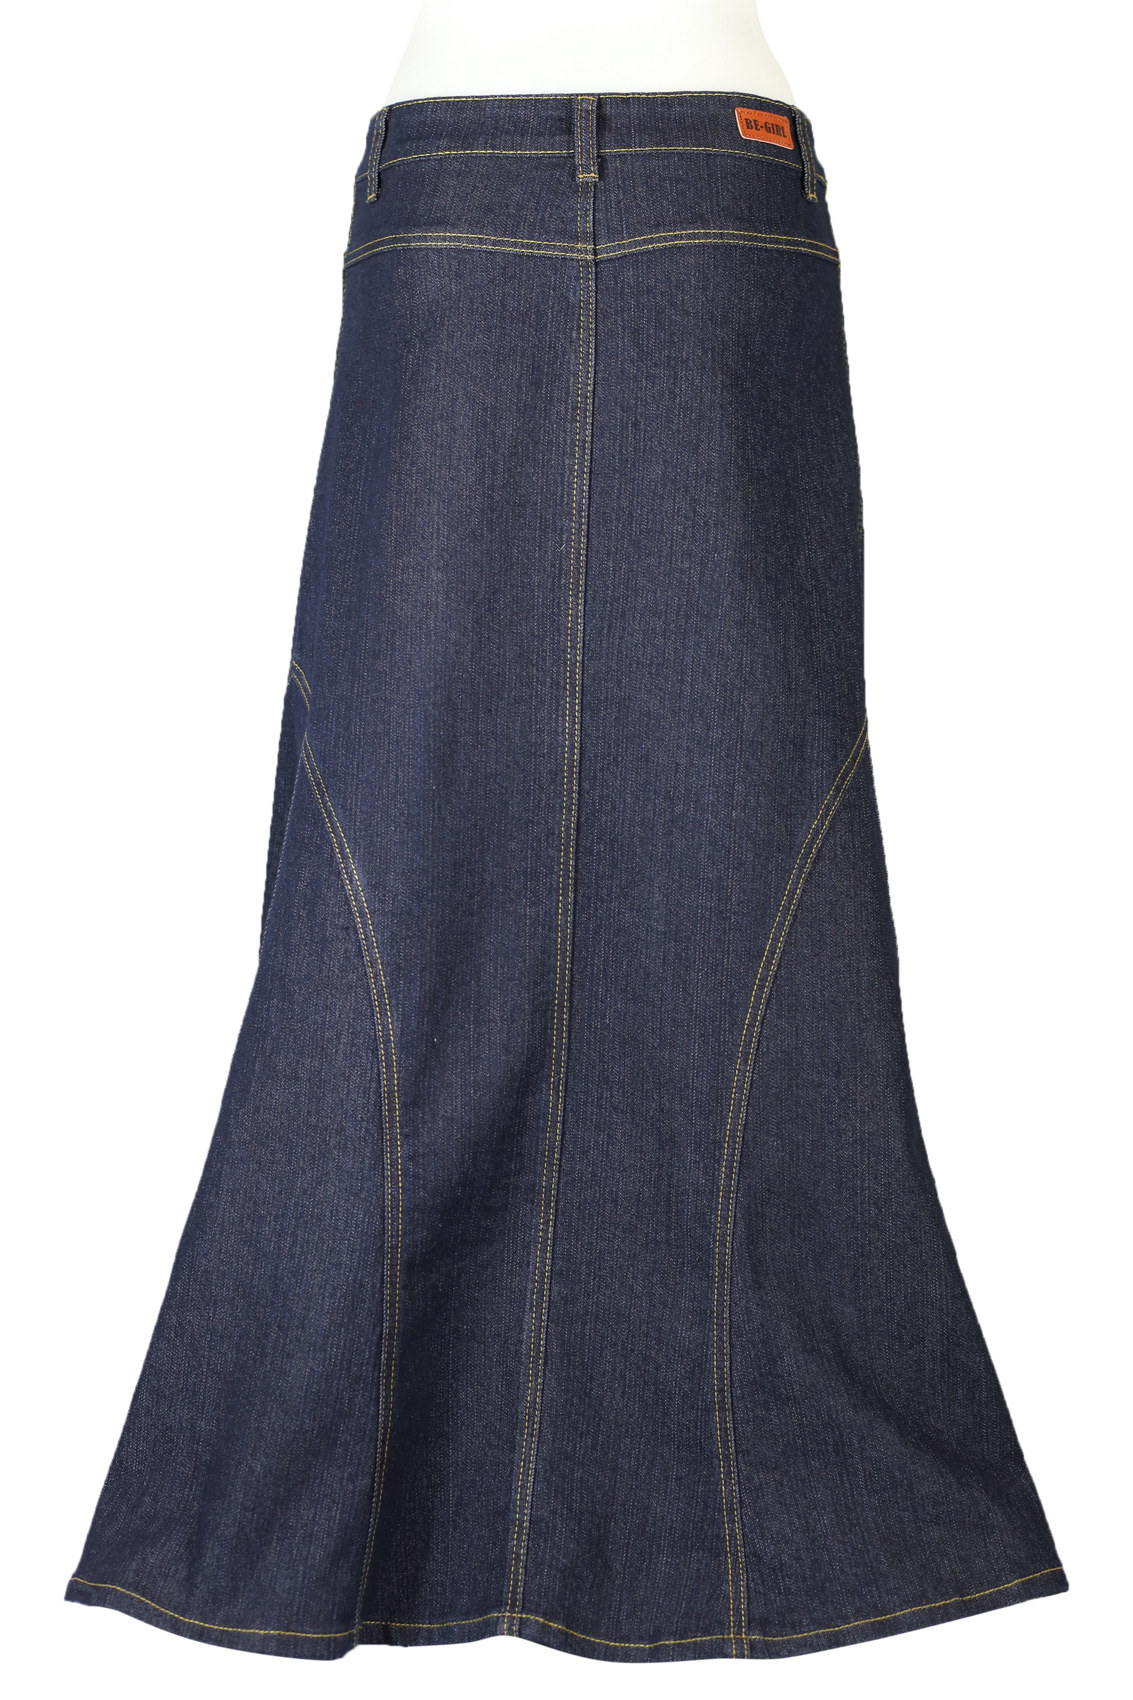 Denim Indigo Modest Skirt | Long Jean Skirt Plus Size 20